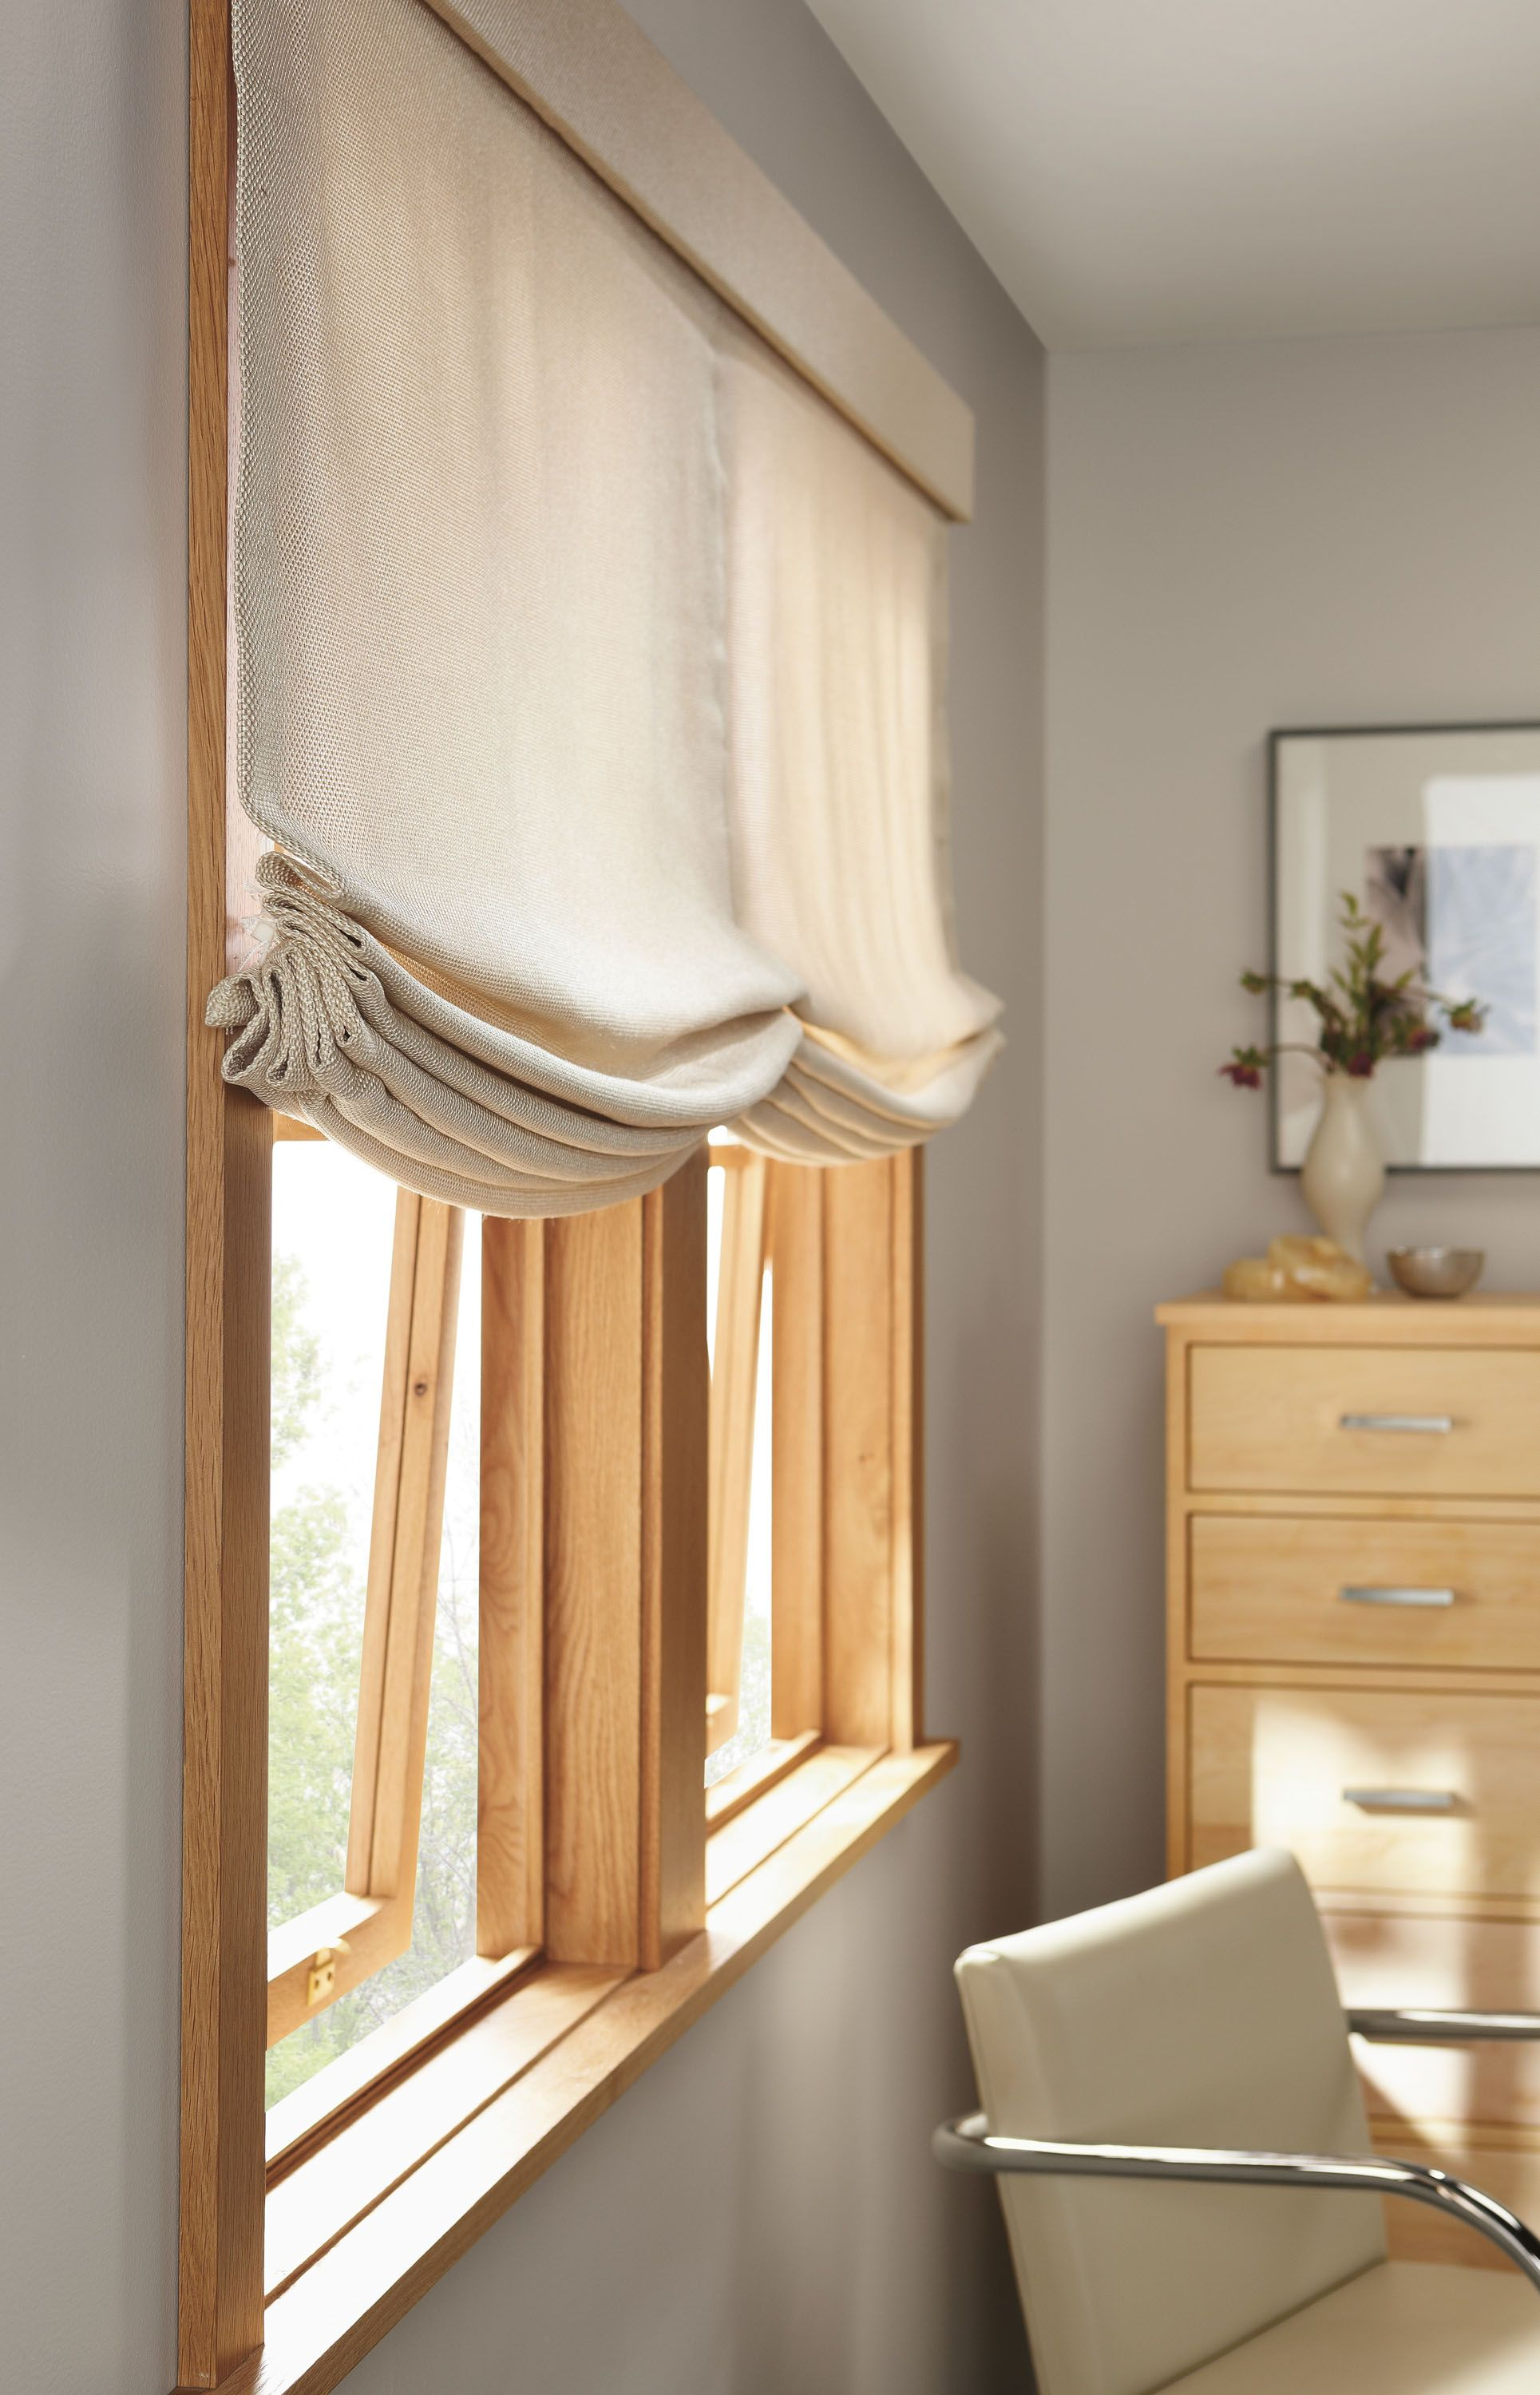 Relaxed Roman Shades BudgetBlindsofThunderBay  Home